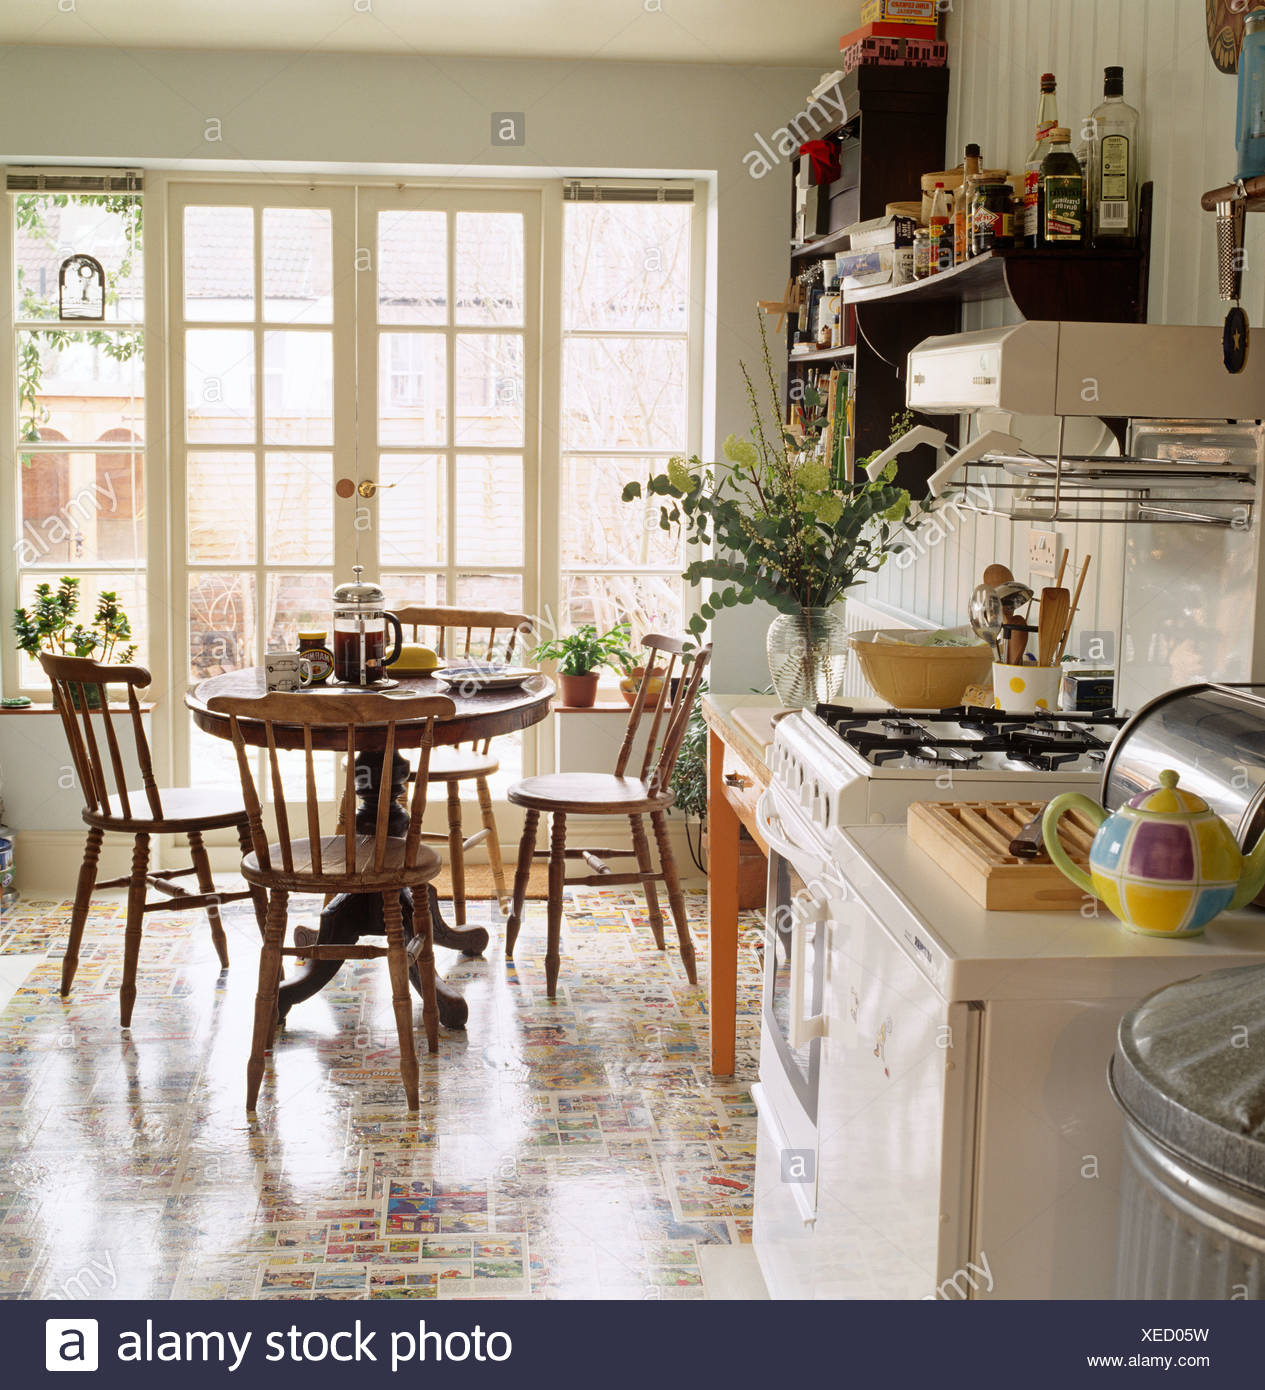 Colorful Flooring And Gas Oven In Kitchen Dining Room With Circular